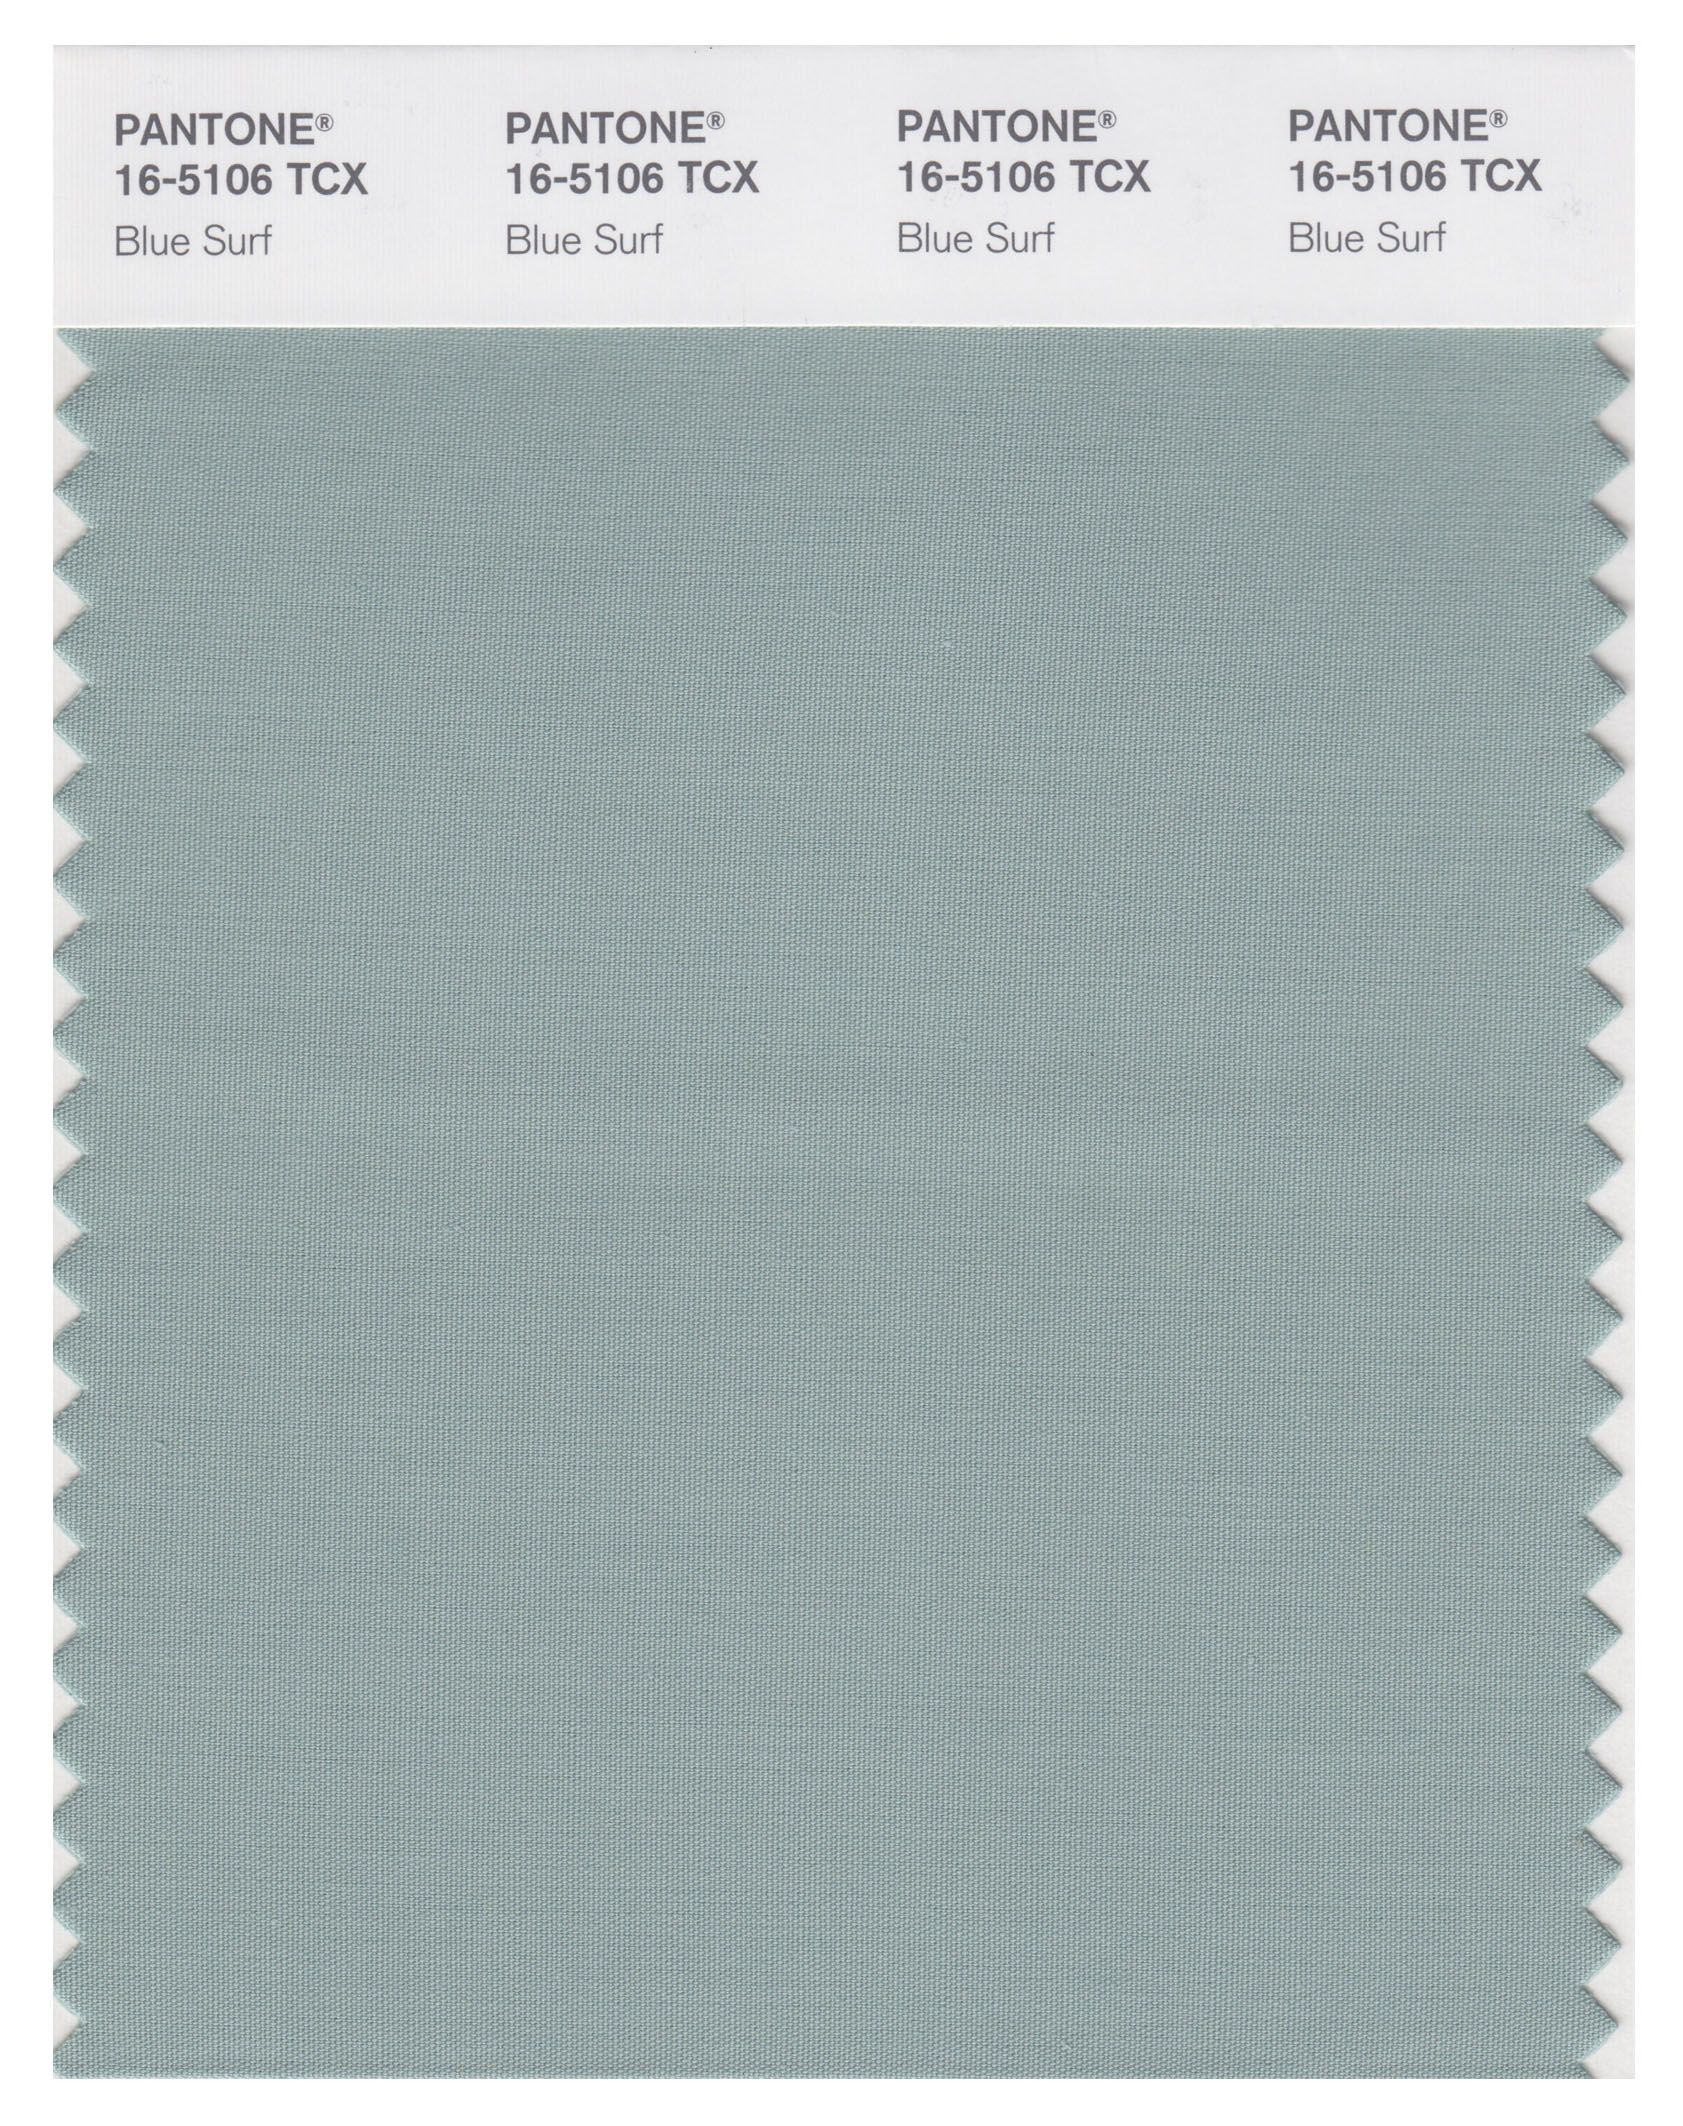 Pantone smart 16 5106 tcx color swatch card blue surf magazine pantone smart 16 5106 tcx color swatch card blue surf magazine cafe store malvernweather Image collections